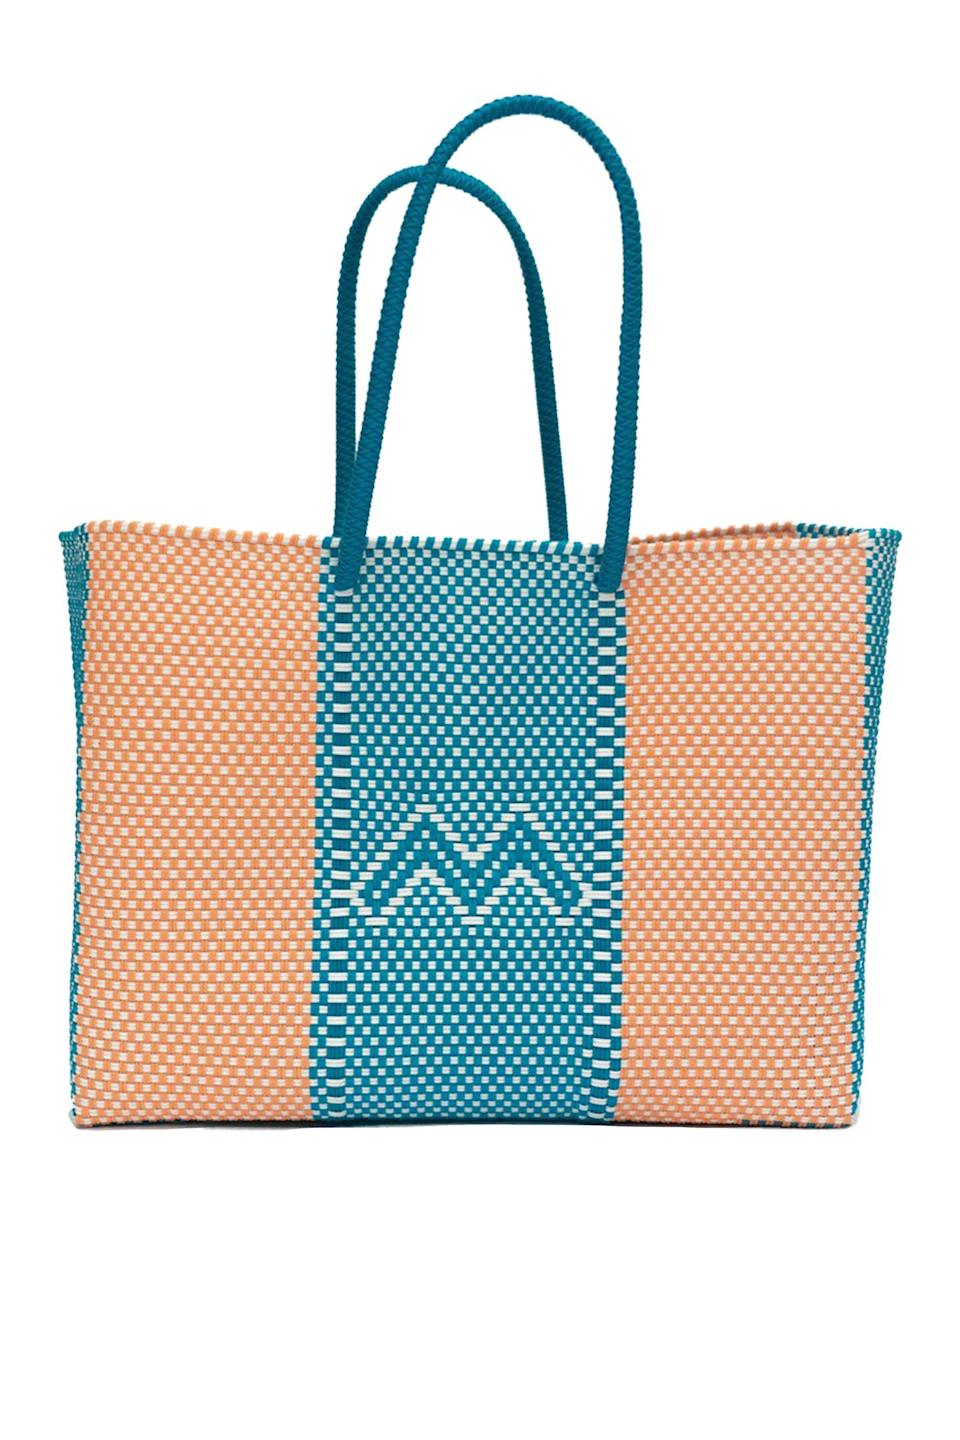 """<p><strong>Modulare</strong></p><p>modulare.us</p><p><strong>$148.00</strong></p><p><a href=""""https://modulare.us/products/sorbet-woven-tote-bag?_pos=1&_sid=2ea74d308&_ss=r"""" rel=""""nofollow noopener"""" target=""""_blank"""" data-ylk=""""slk:Shop Now"""" class=""""link rapid-noclick-resp"""">Shop Now</a></p><p>Launched in March 2020, Maison Modulare was founded by Chrys Wong, who discovered success by creating luxury masks using fabric surplus in response to the global pandemic. Wong's brand reflects her zero-waste policy and consists of pieces made by family-owned operations across the world, including Oaxaca, Mexico, where this hand-crafted weaved tote was made from 100% recyclable vinyl. This sturdy, colorful tote is perfect for running errands, going to the beach or grabbing produce at the local farmer's market.</p>"""